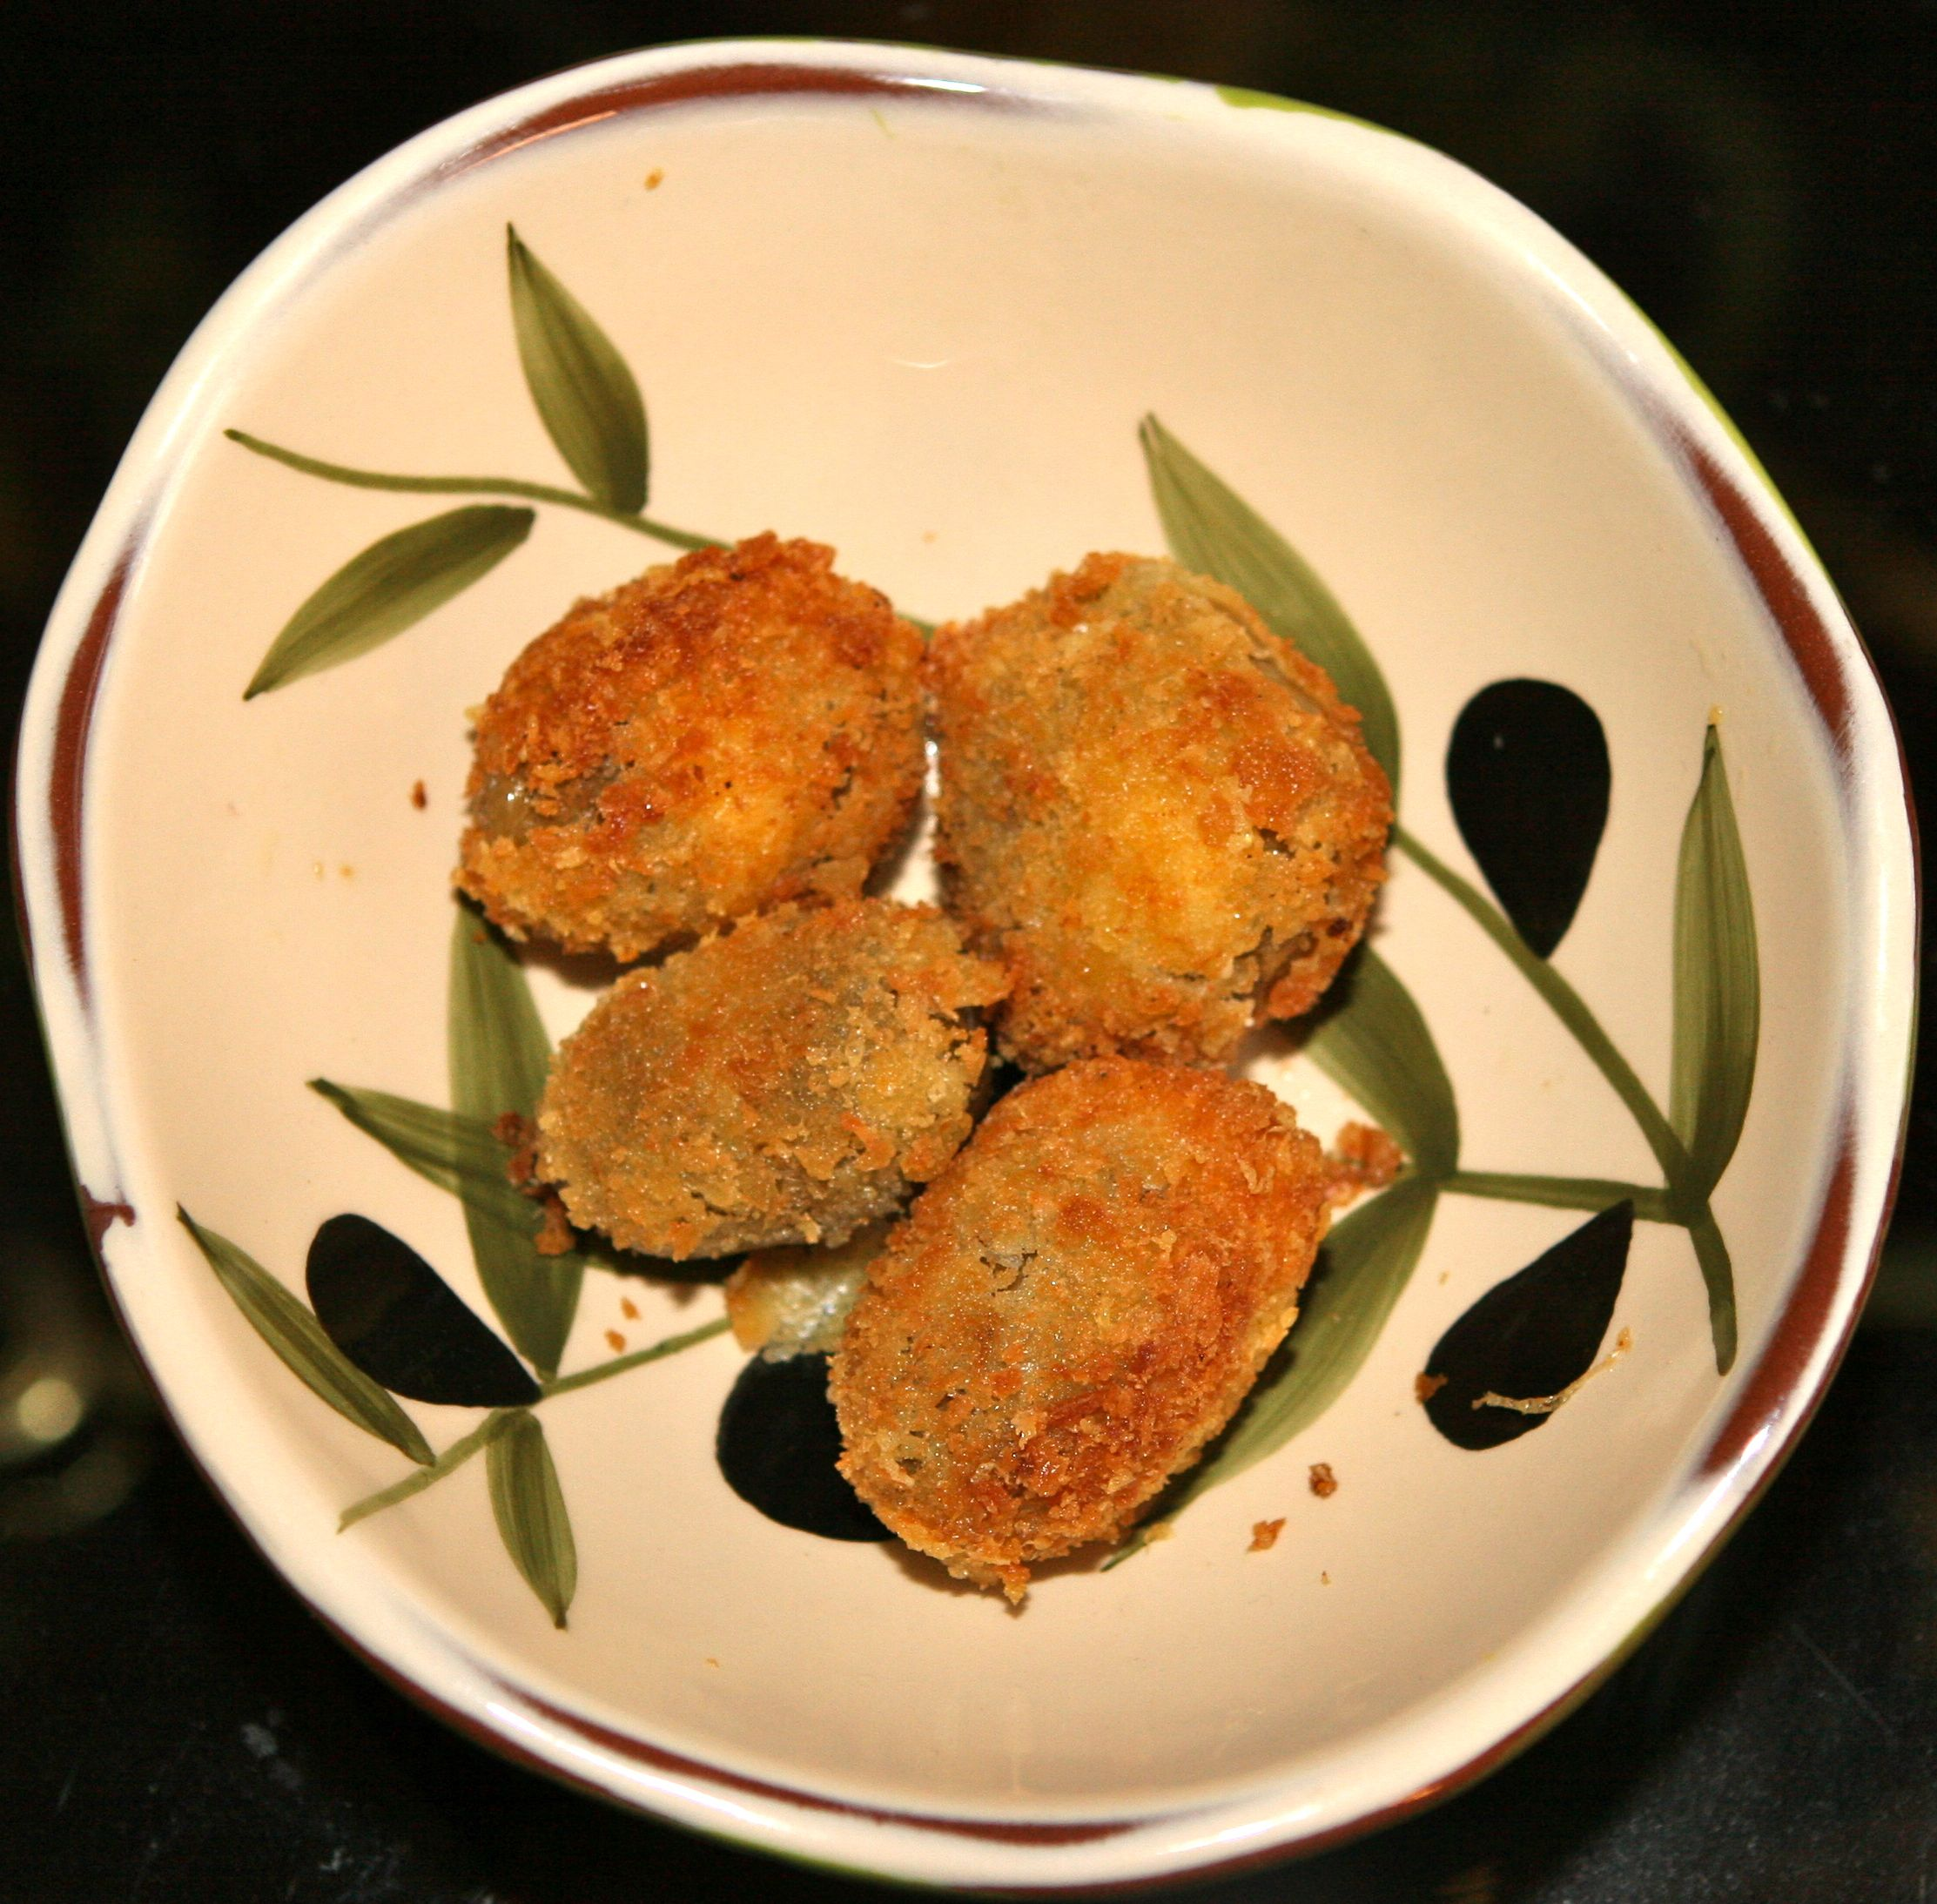 Kathy's Fried Olives